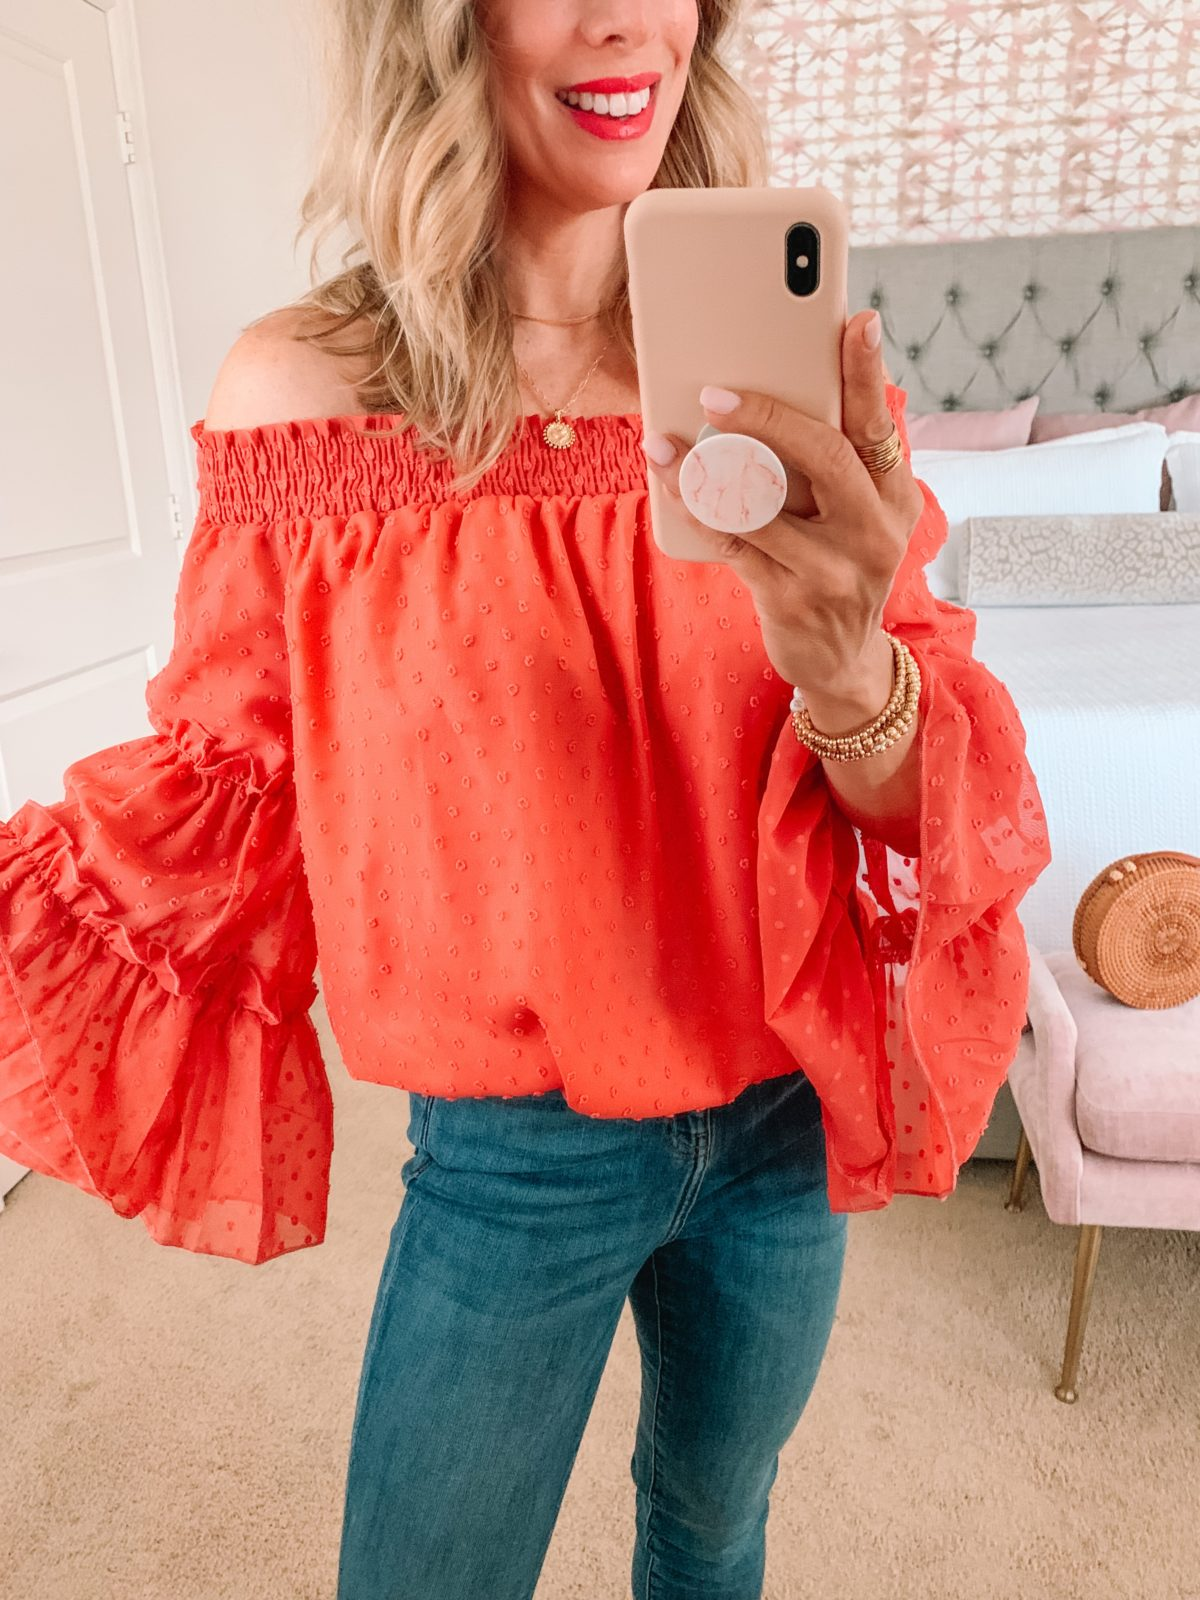 Amazon Fashion Faves, Clip Dot Off the Shoulder Top and Jeans, Sandals